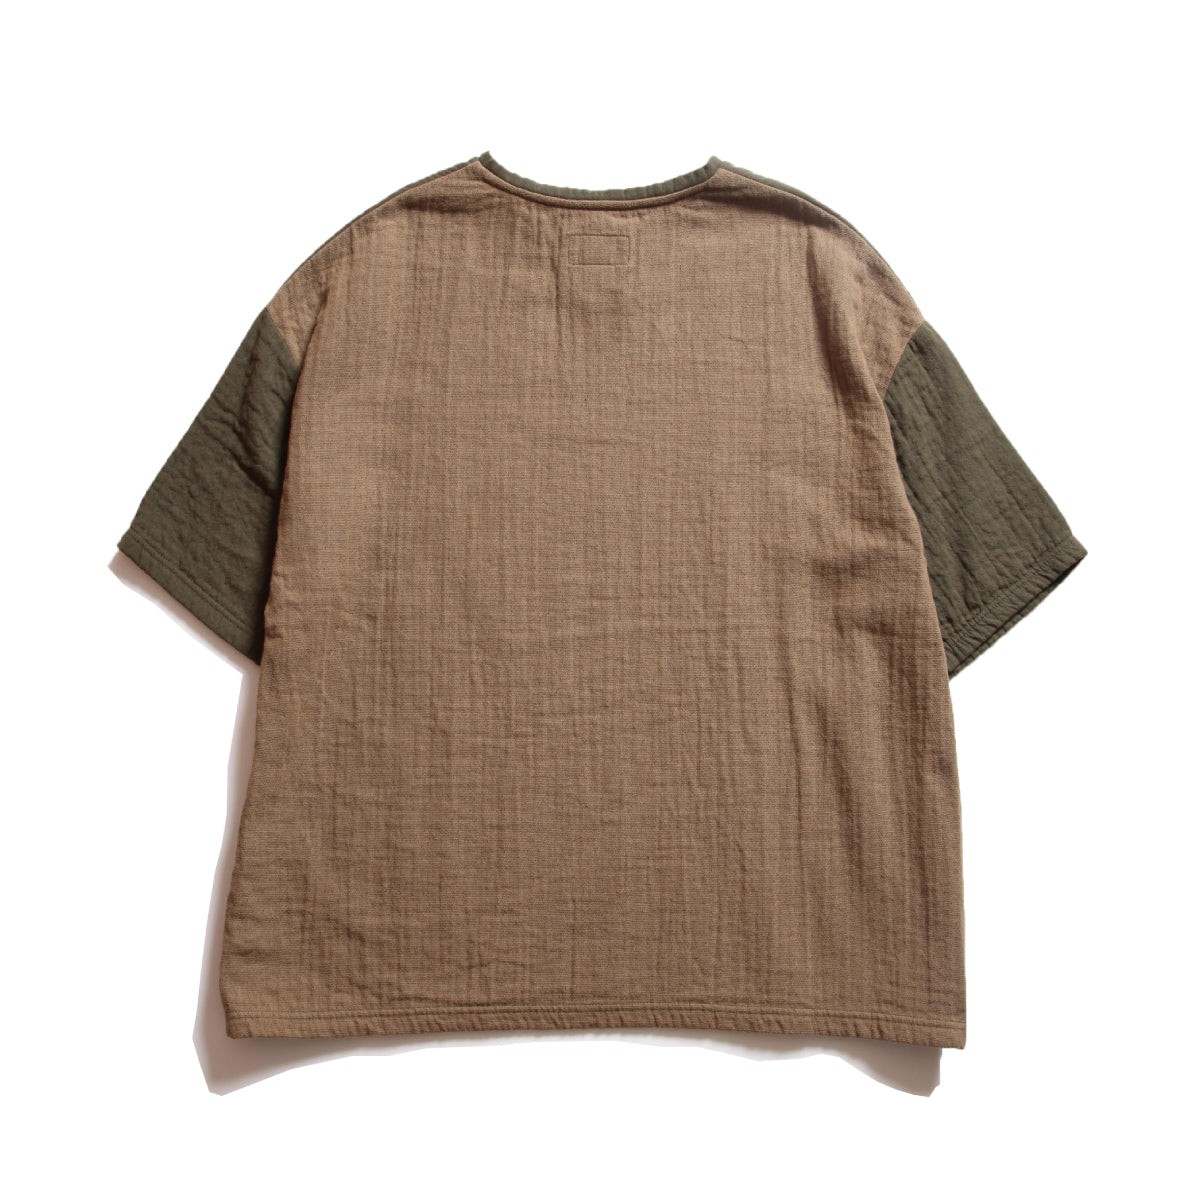 Alfred_Dual Layered Pullover Henry Neck T-Shirt